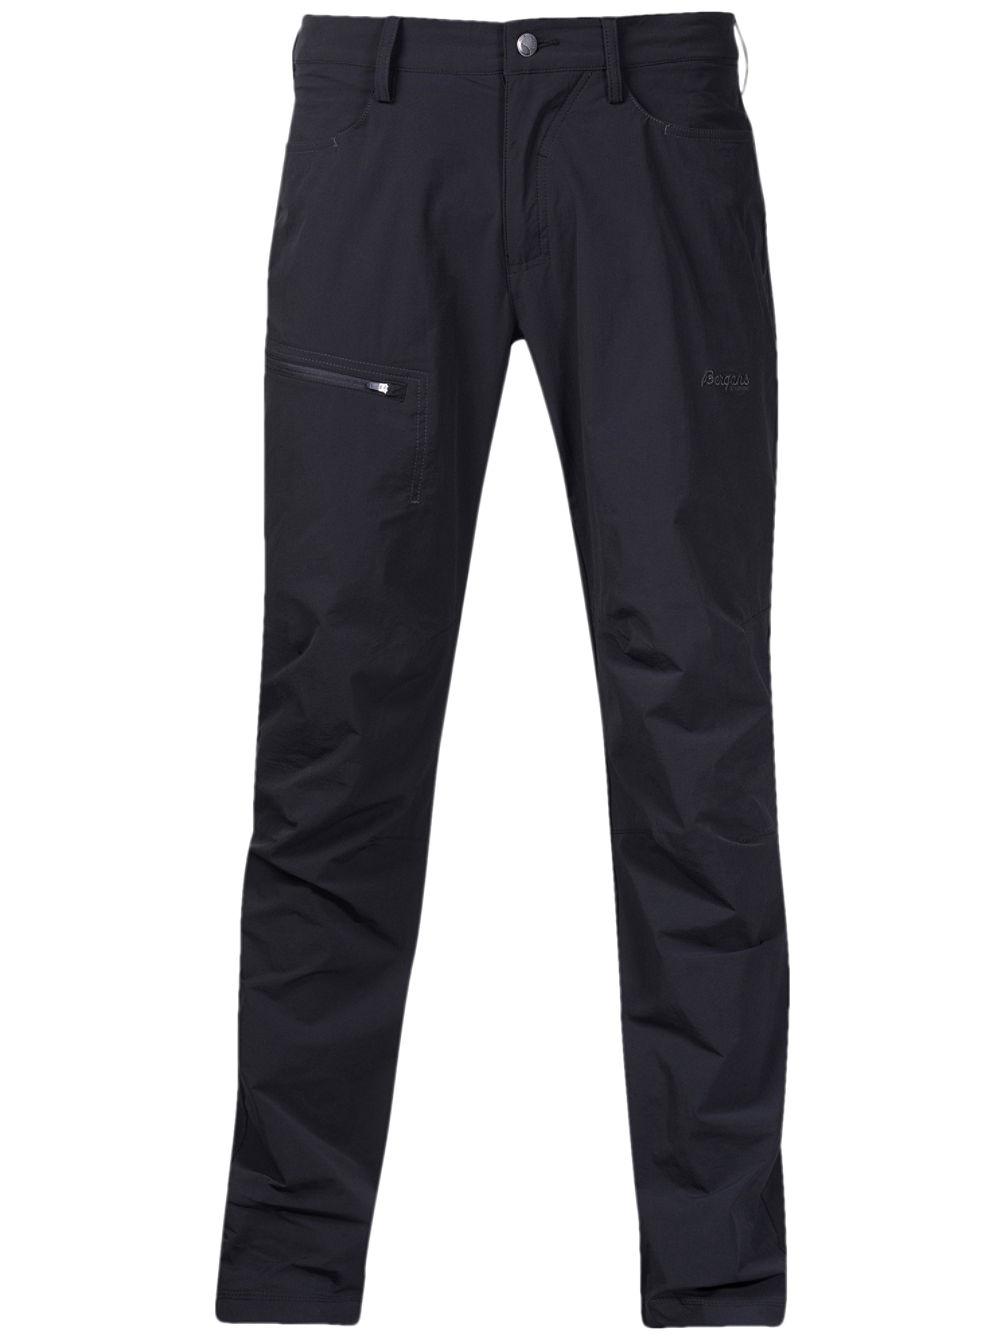 a1c88c56 Buy Bergans Moa Outdoor Pants online at Blue Tomato